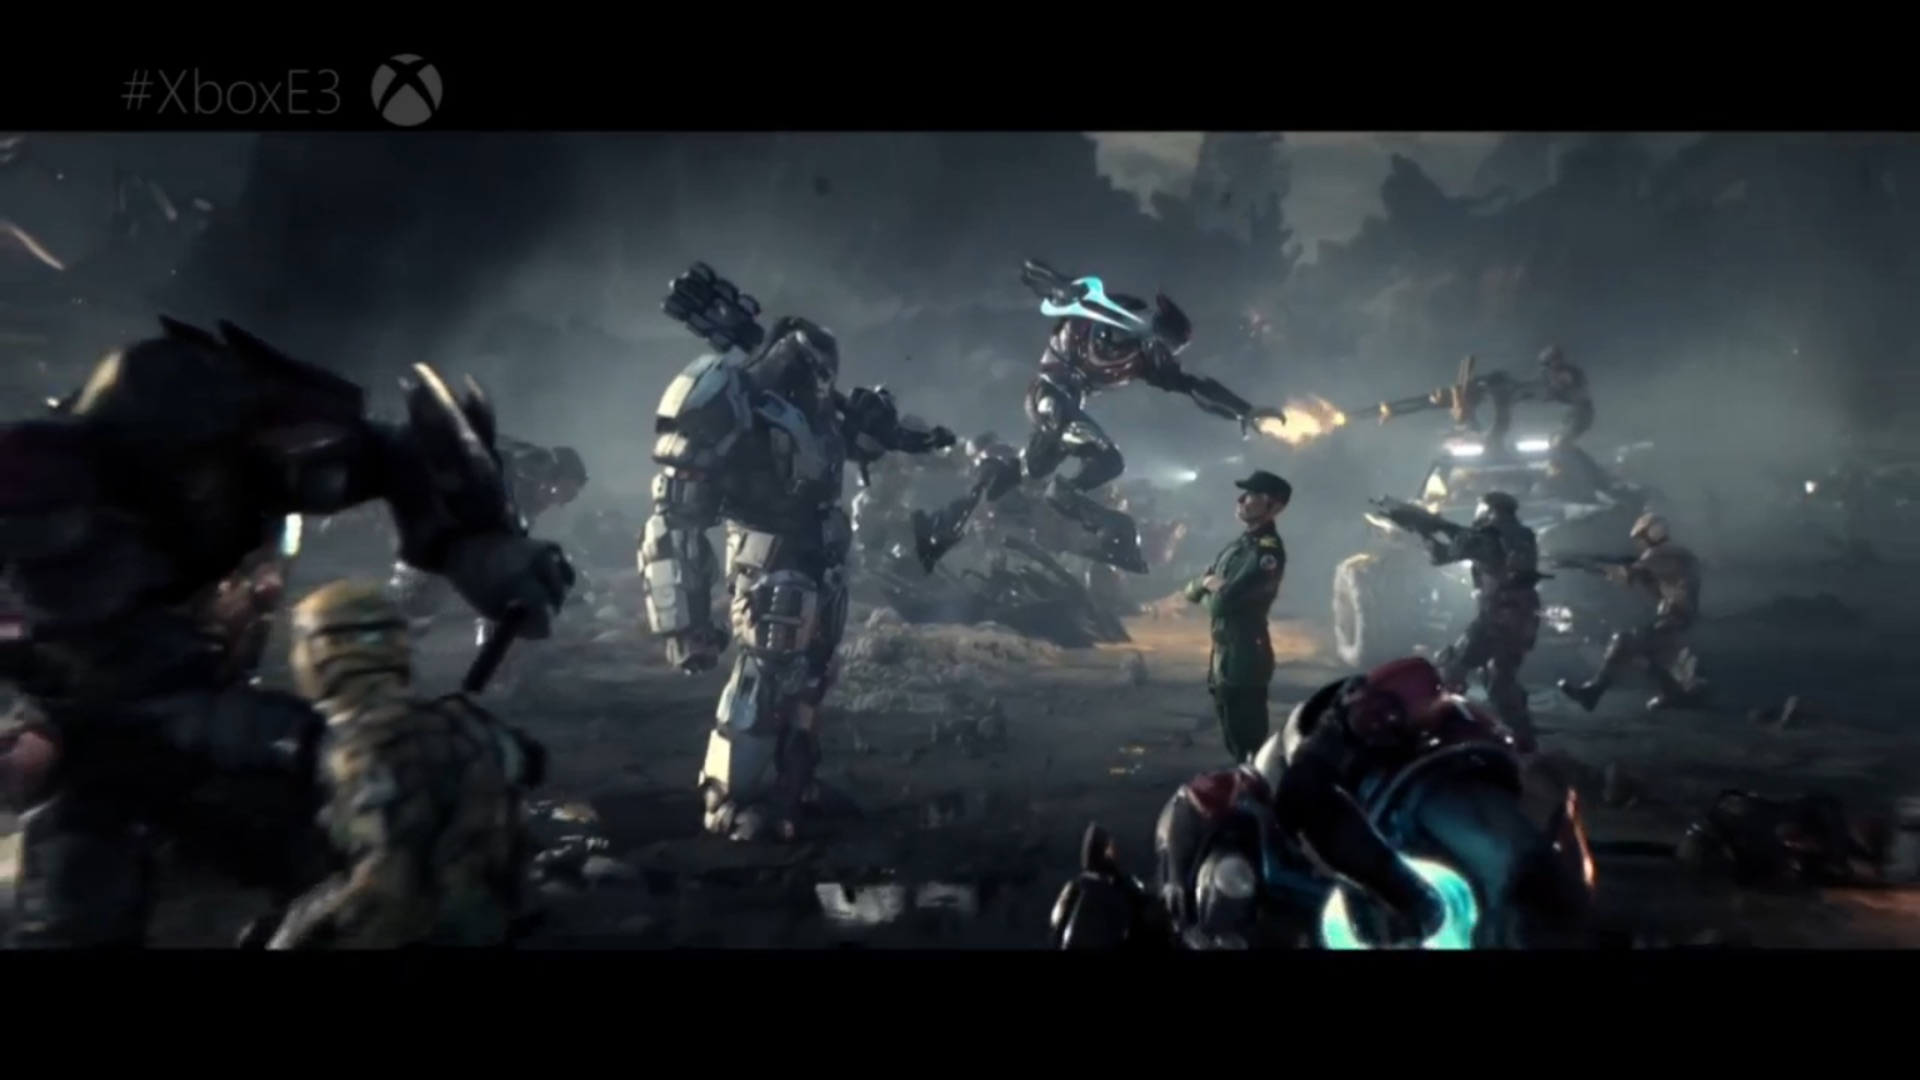 Halo wars game wallpapers 99 wallpapers hd wallpapers - Wallpaper halo wars ...